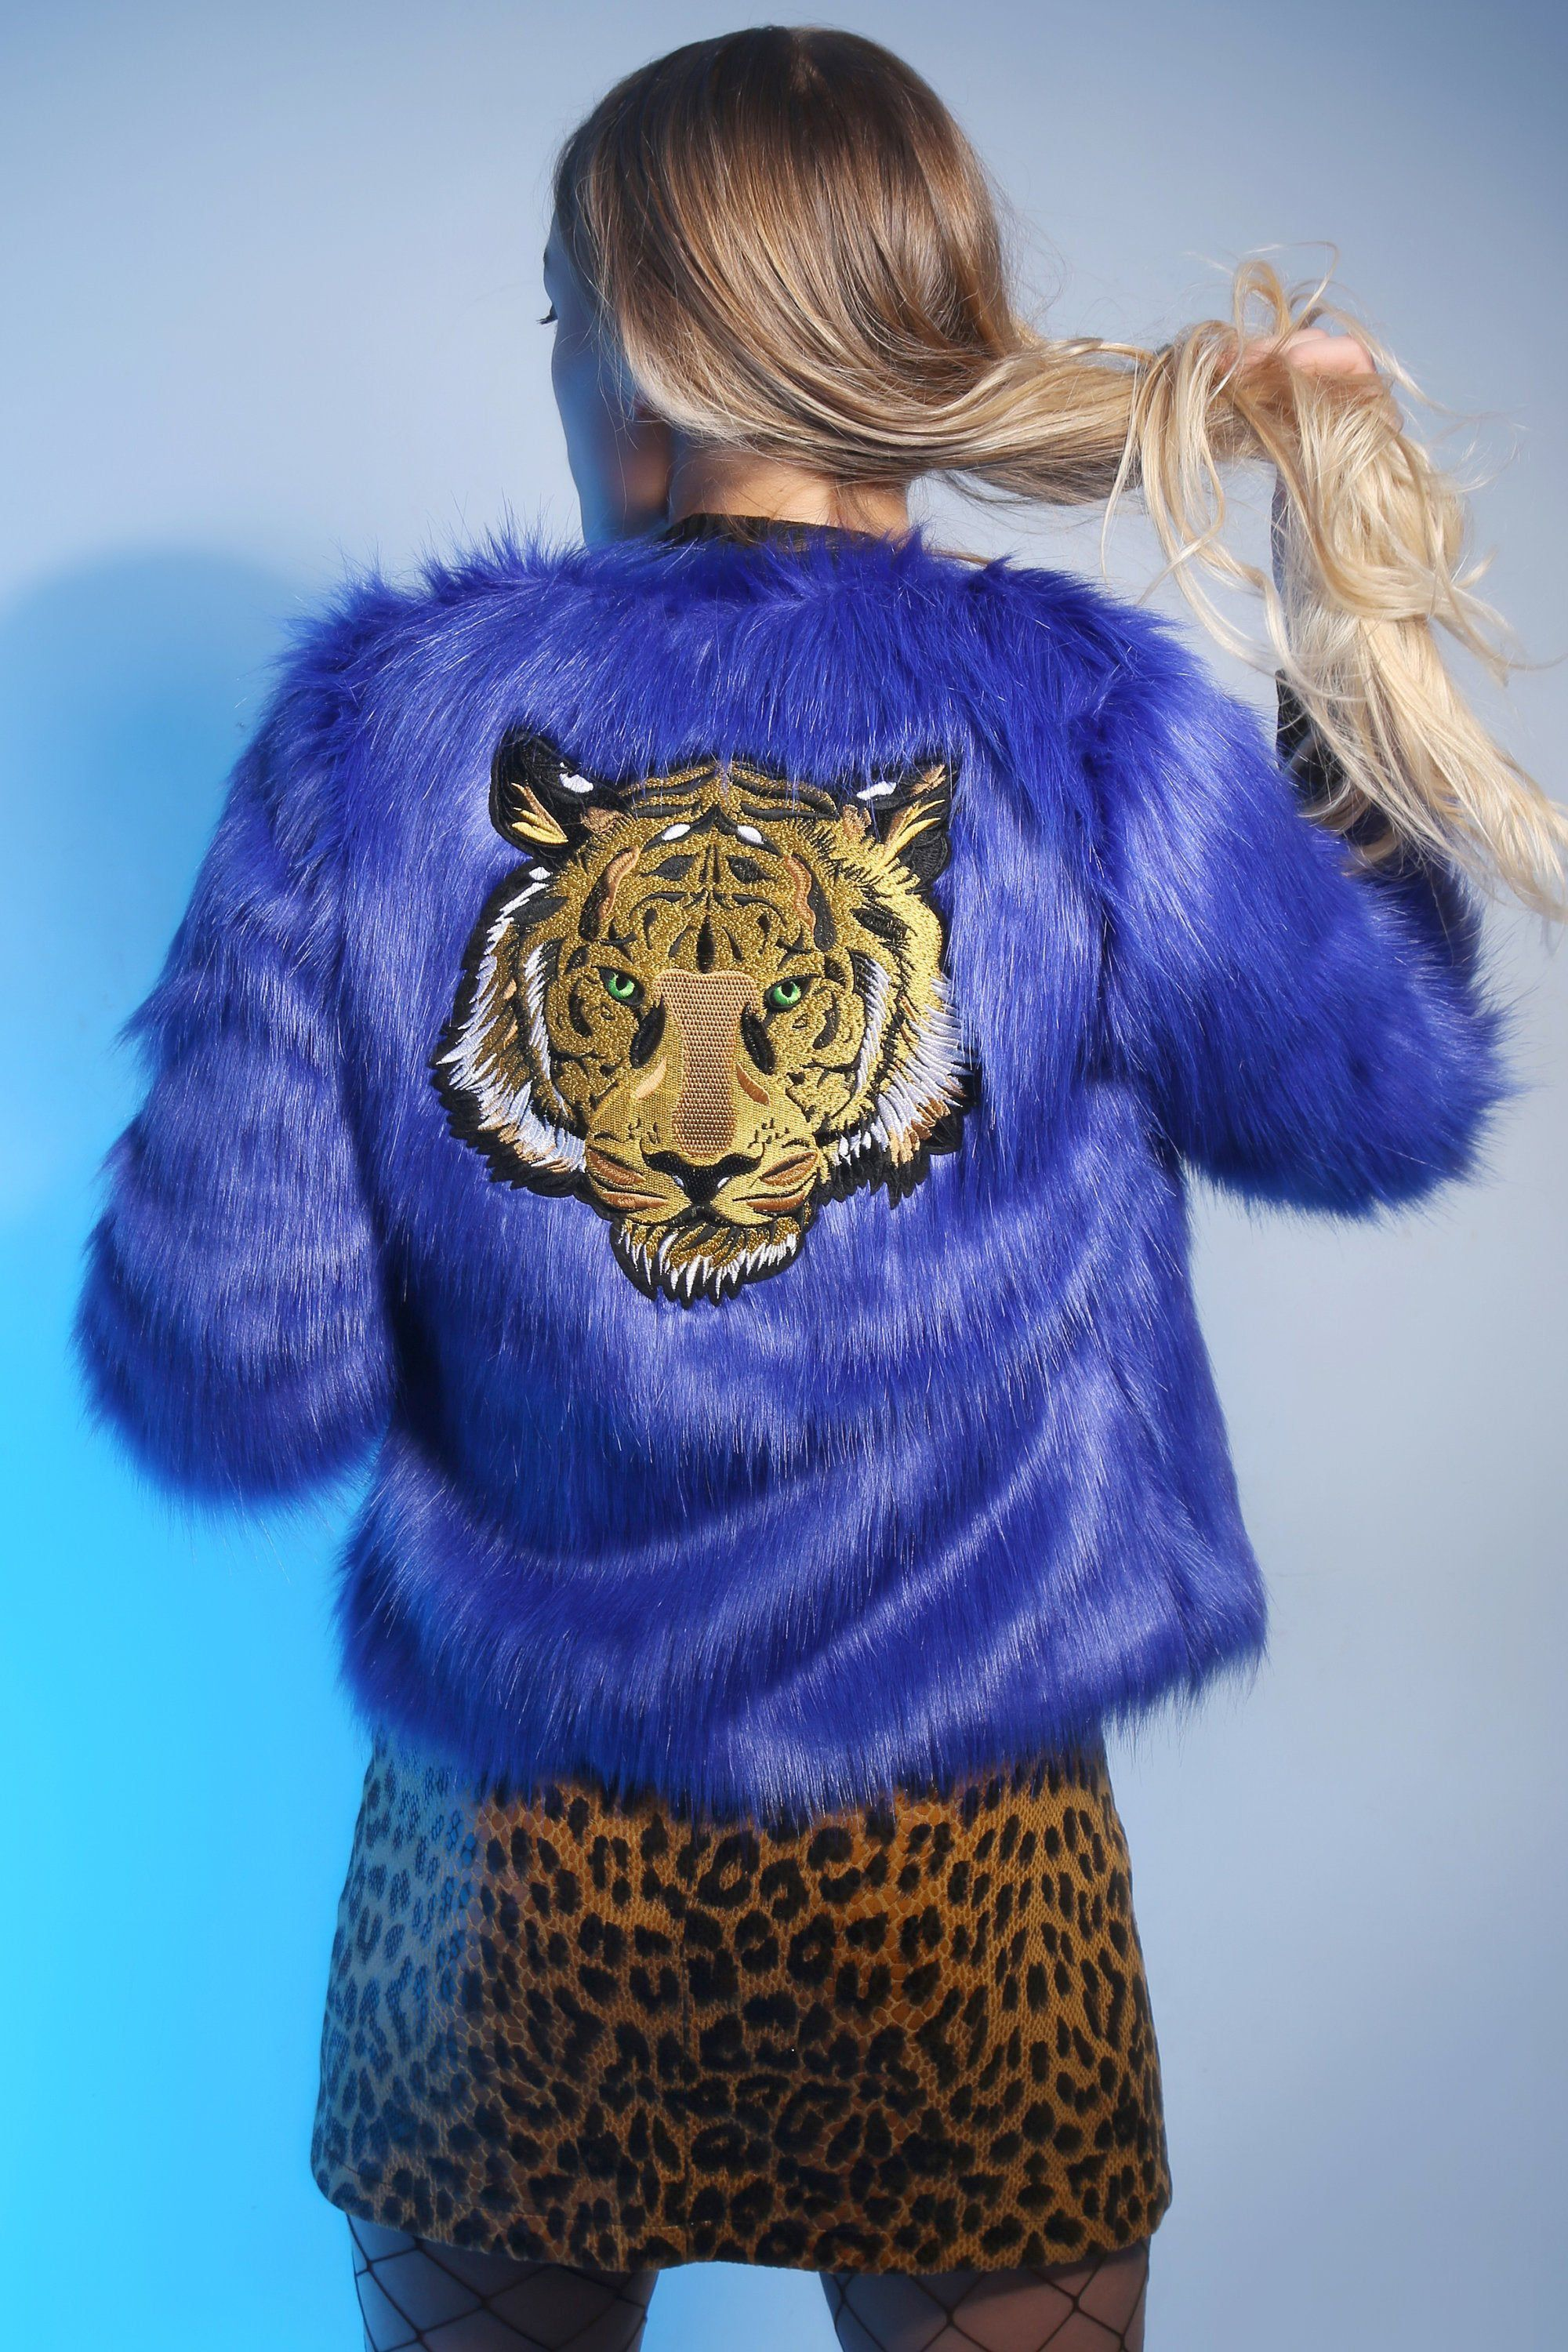 Embroidered Electric Blue Faux Fur Tiger Head Jacket Party